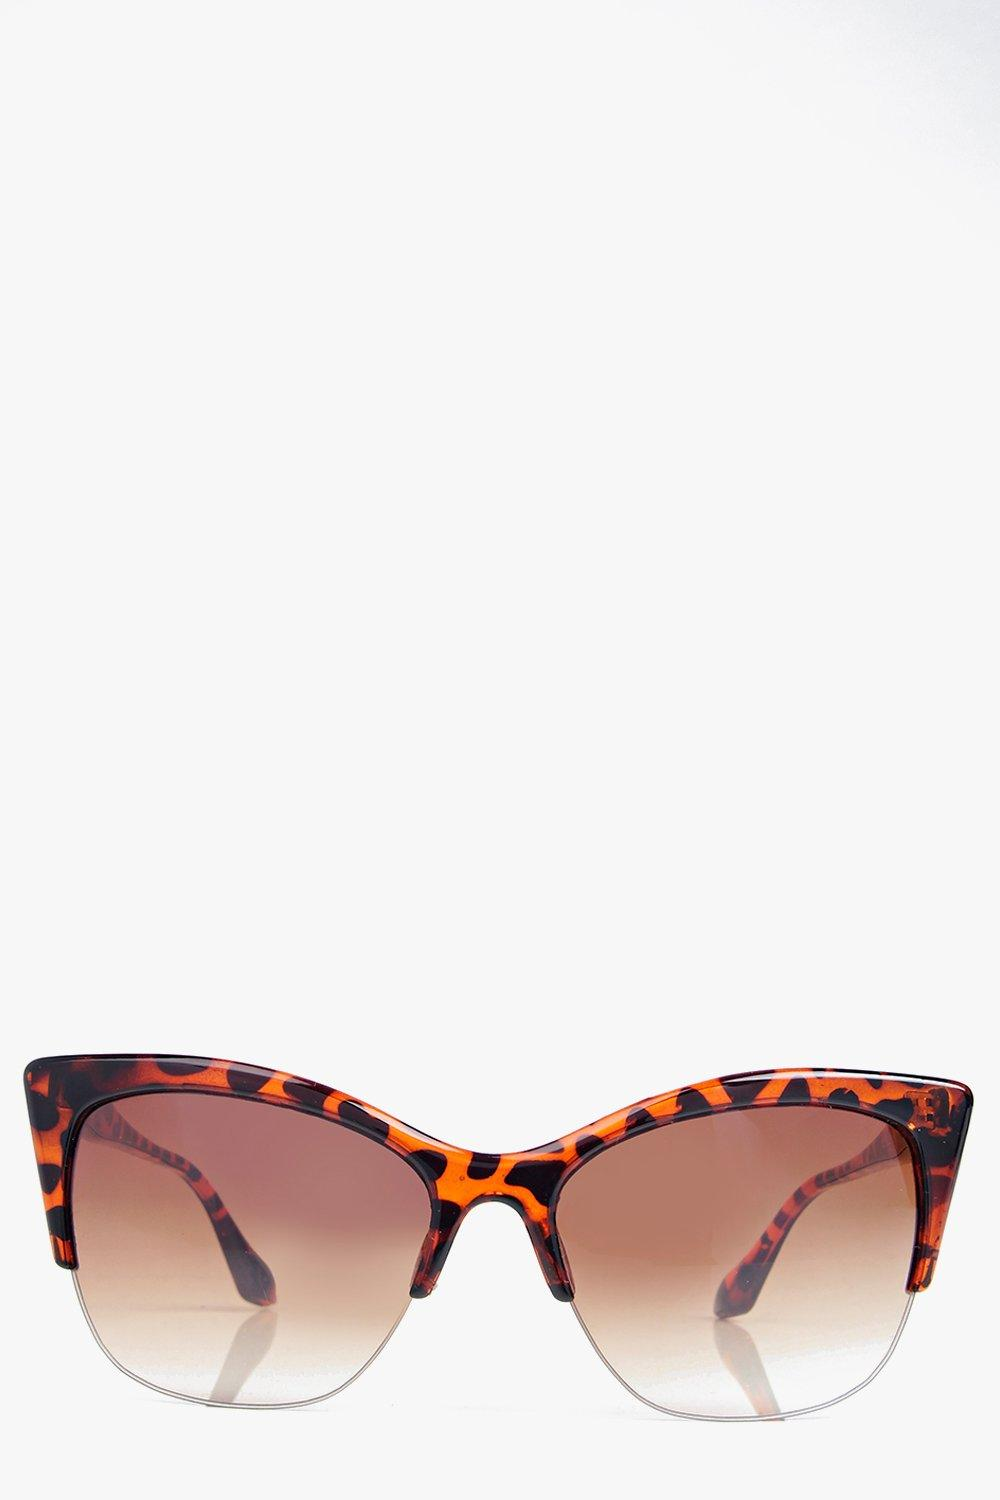 Half Frame Cat Glasses : Boohoo Womens Lacey Half Frame Cat Eye Sunglasses in Brown ...